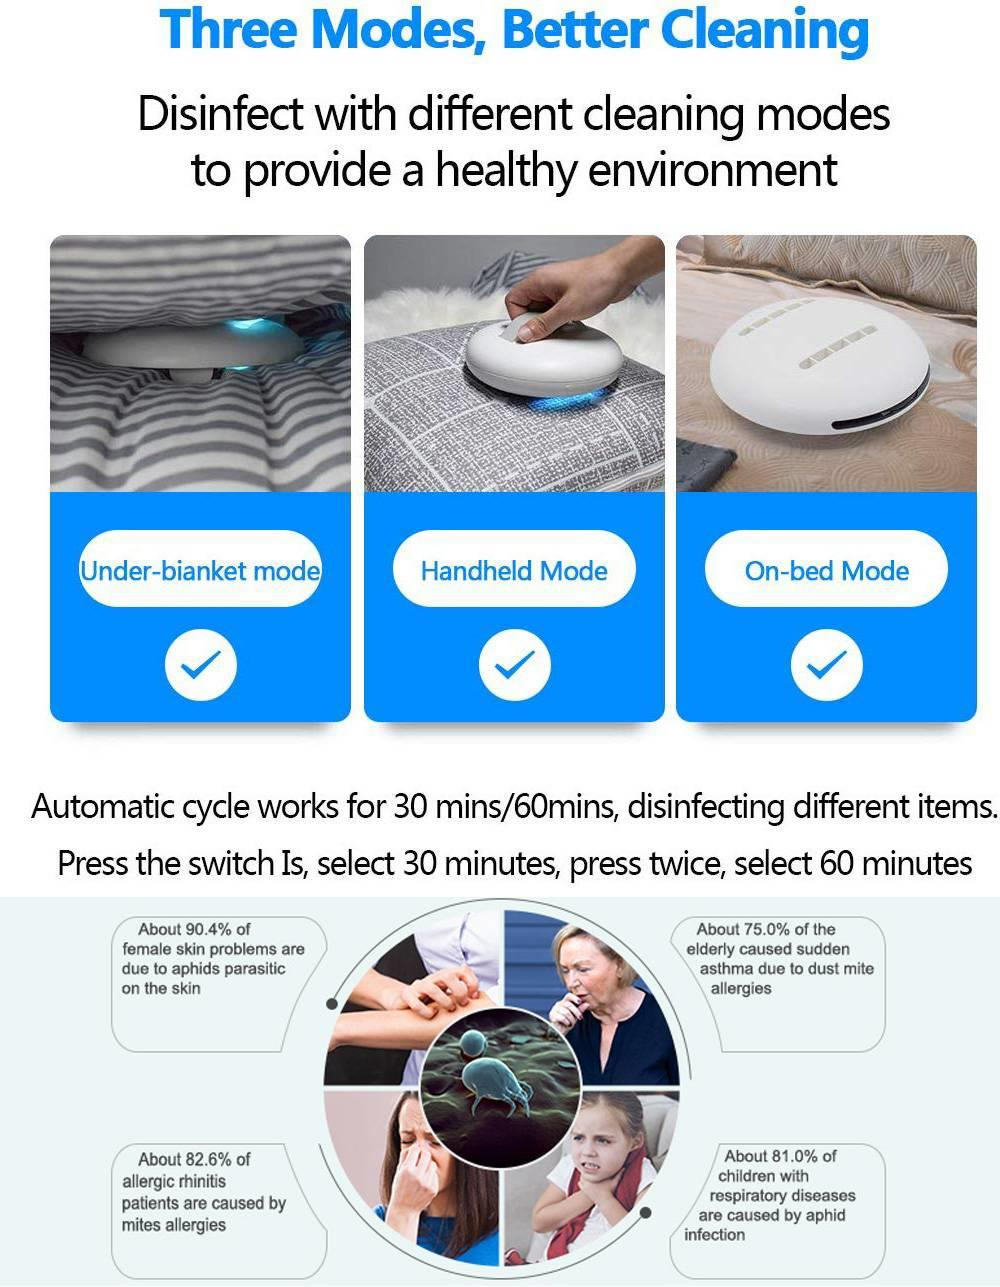 SunMan 2 Portable Smart UV-C Cleaning Robot Anti-dust Mites USB Charging Bed Robot Cleaner For Home Travel Hotel Accommodation - White